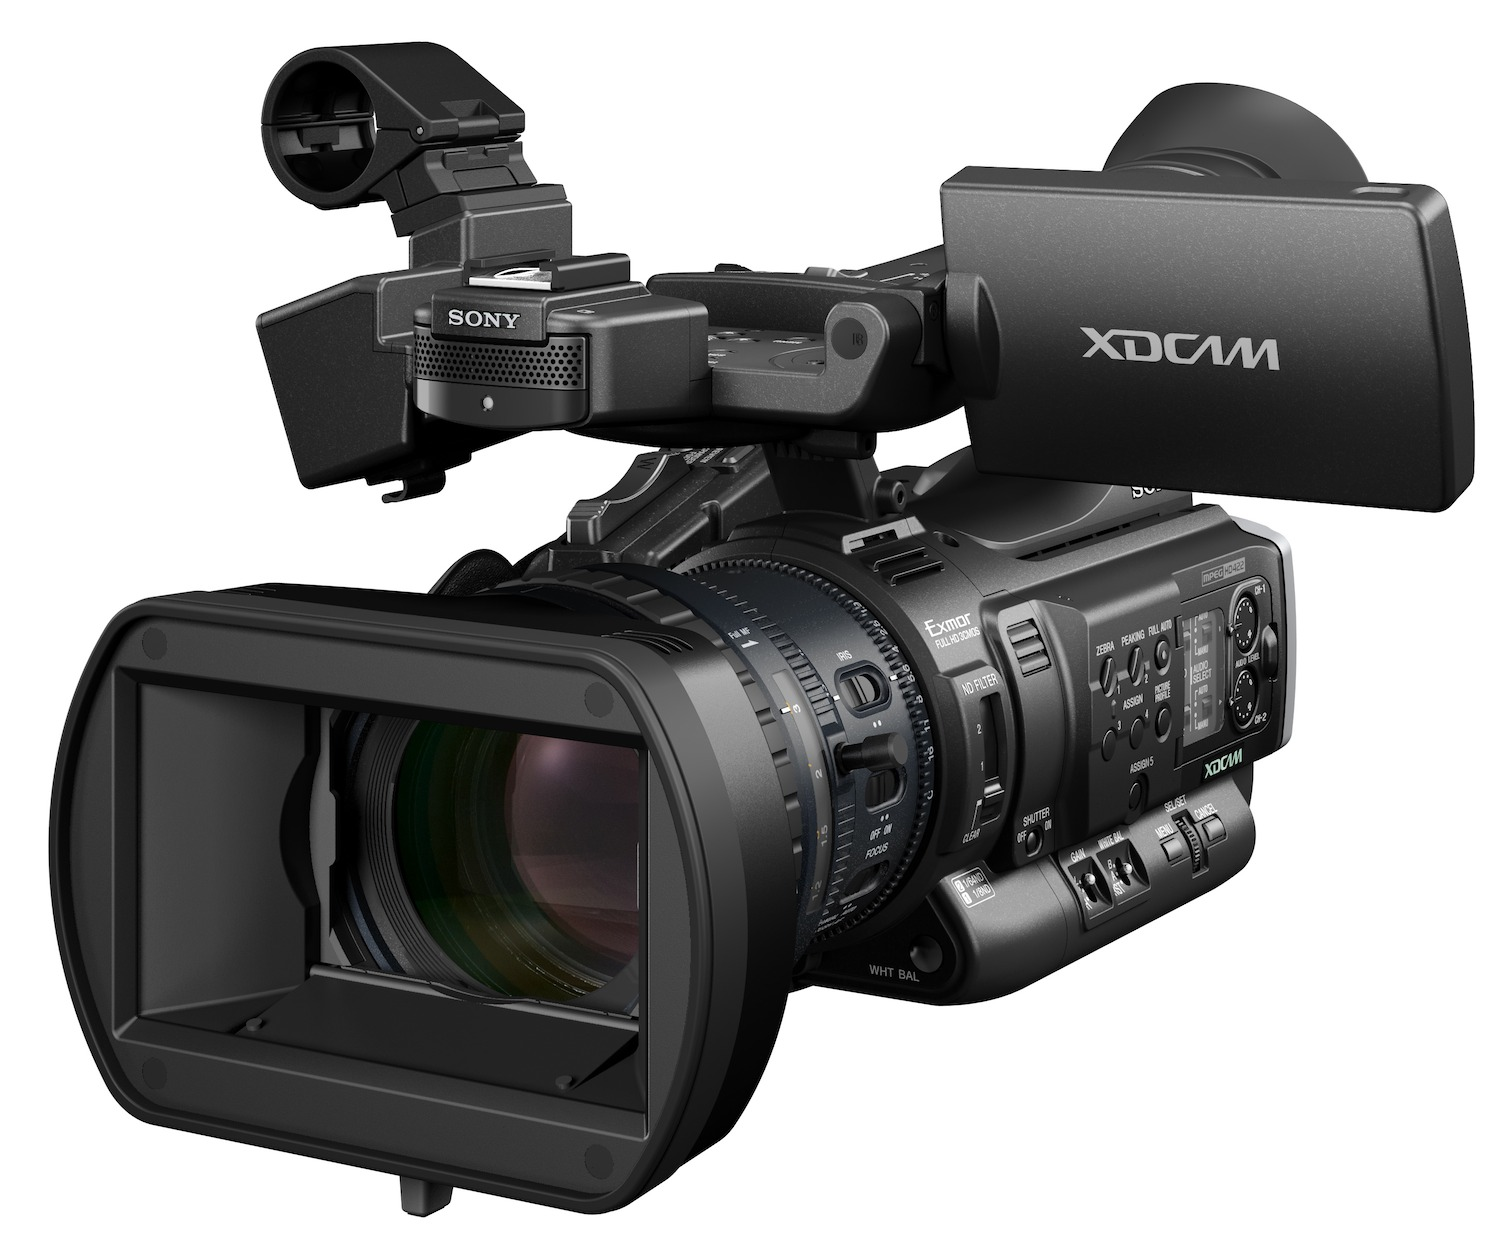 Sony PMW-200 XDCAM camcorderProfessional Video Camera Png